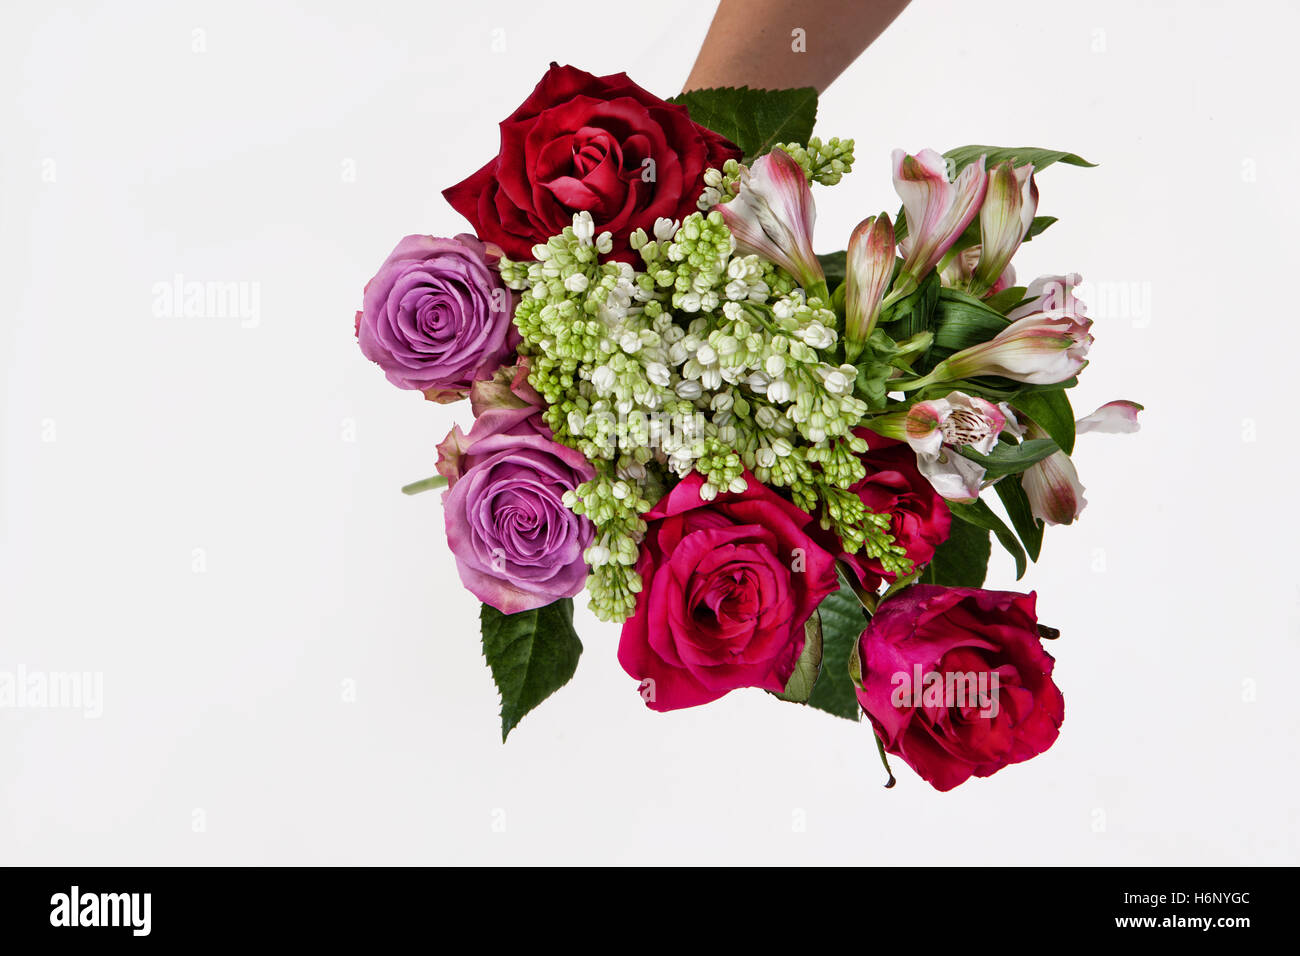 Hand holding a bouquet of different flowers on an isolated studio hand holding a bouquet of different flowers on an isolated studio background izmirmasajfo